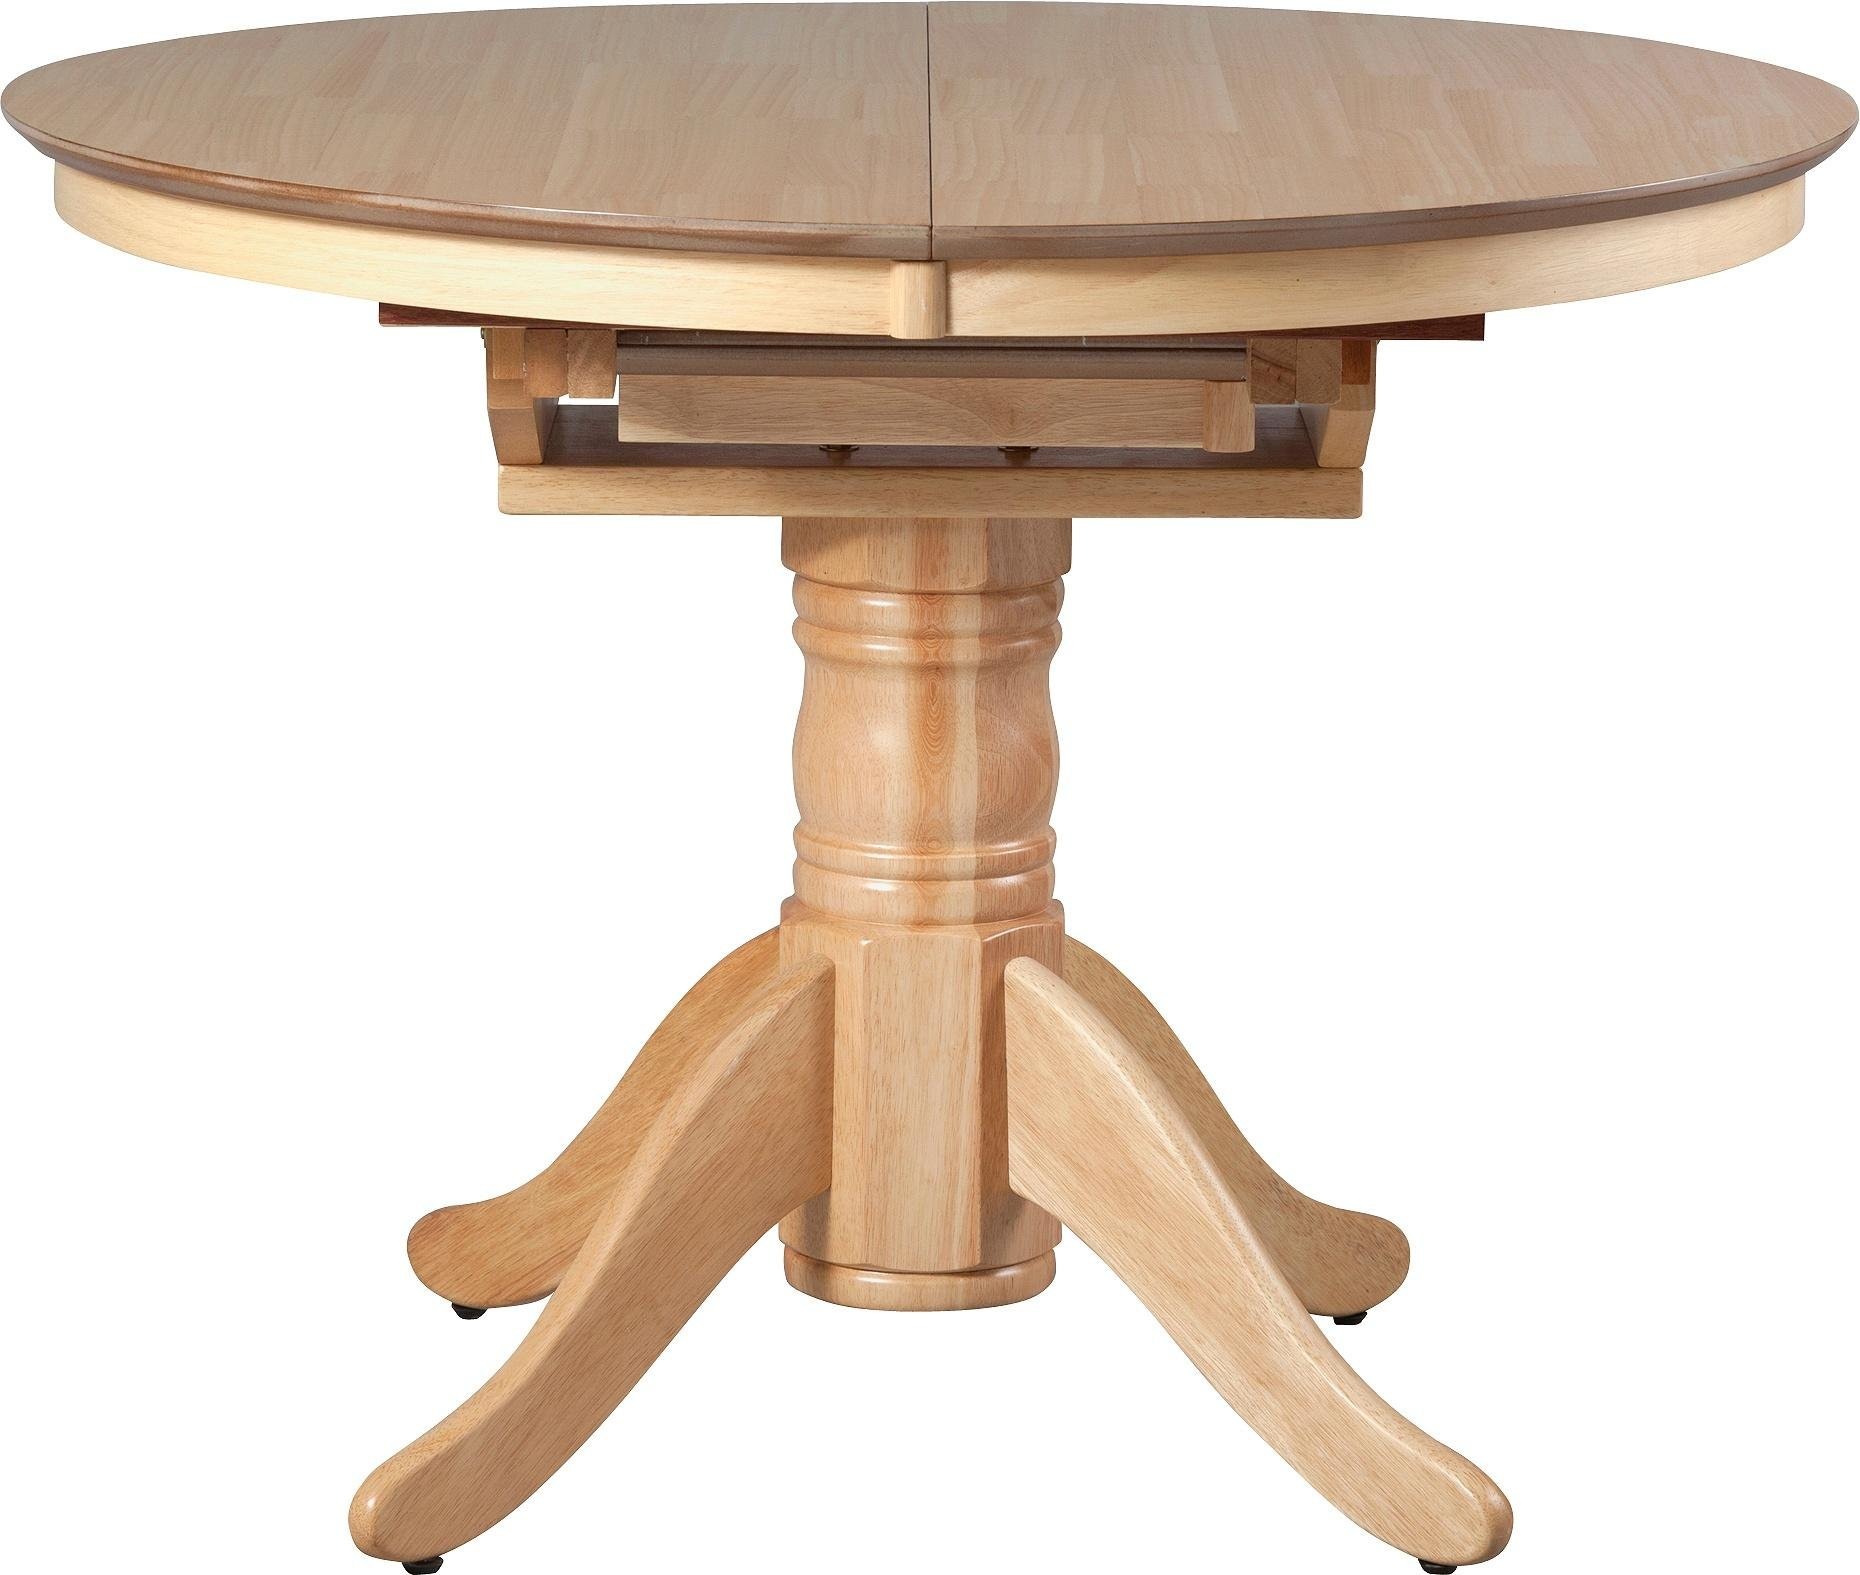 Buy Collection Kentucky Extendable Dining Table Natural  : 6038241RZ001AUC1401306Webampw570amph513 from www.argos.co.uk size 570 x 513 jpeg 25kB